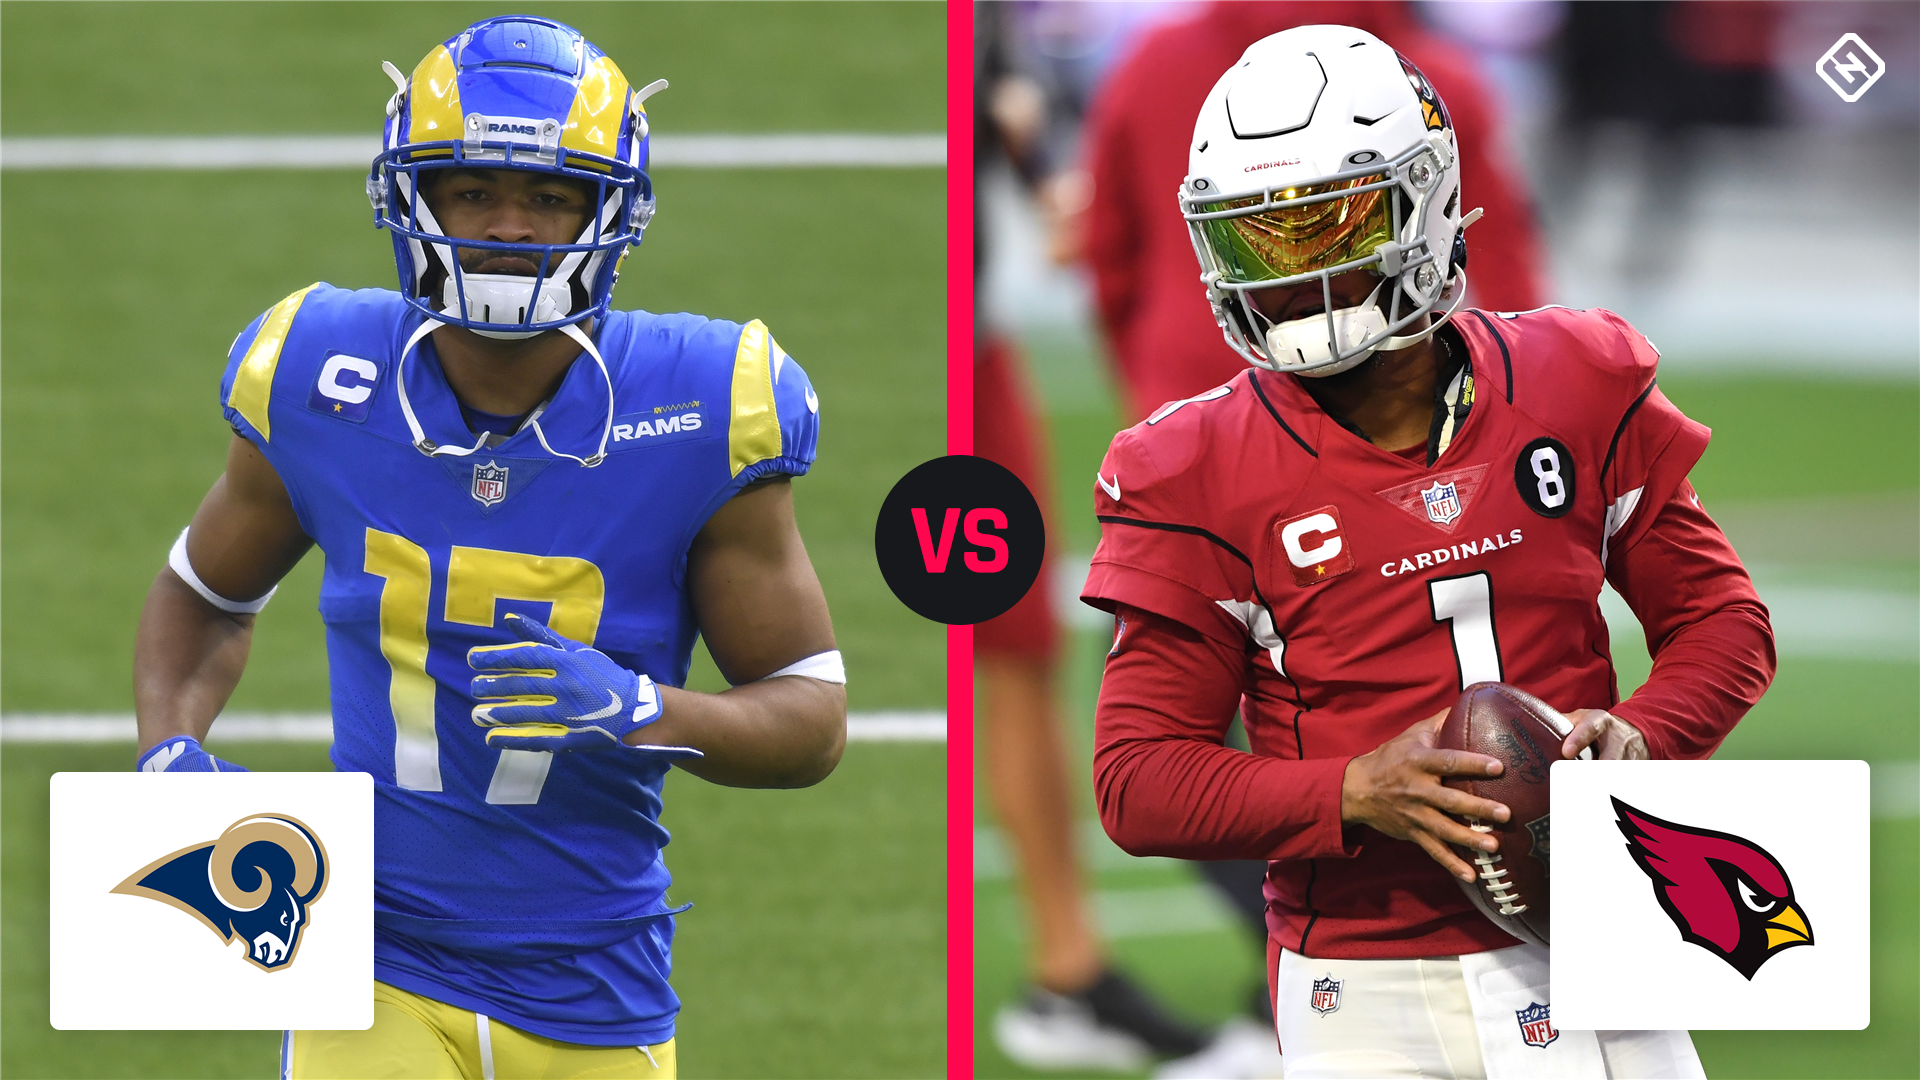 What Channel Is Rams Vs Cardinals On Today Time Tv Schedule For Nfl Week 17 Game Report Door